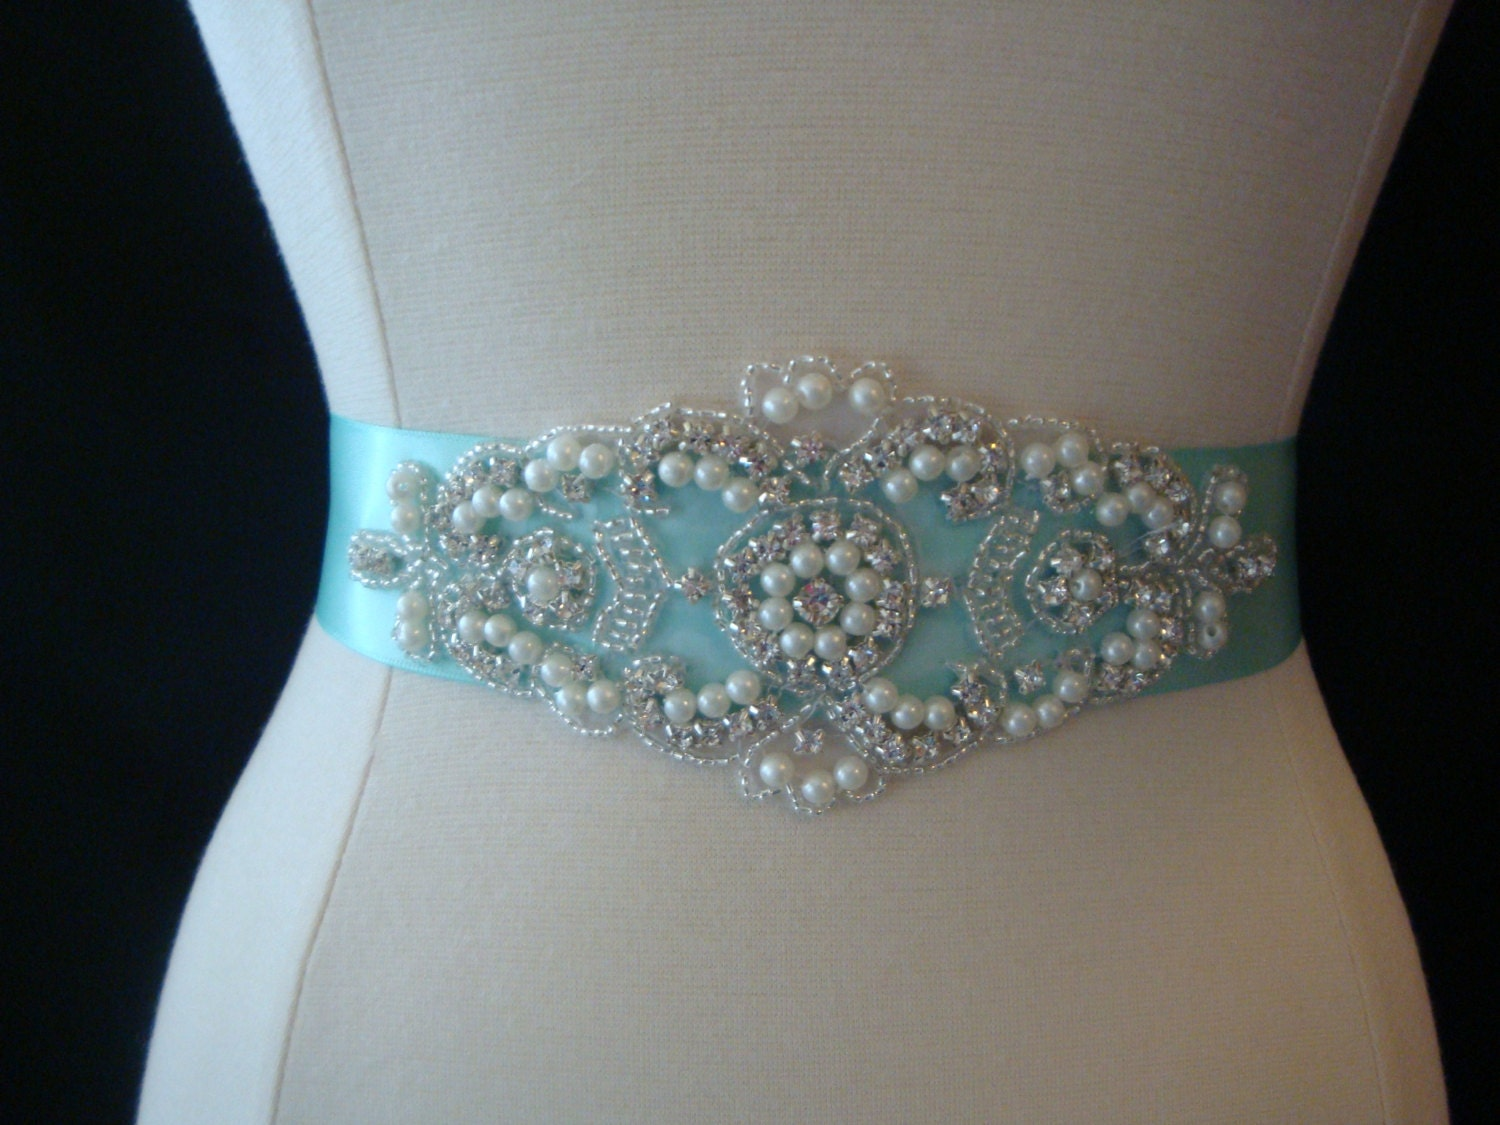 Aqua blue wedding sash rhinestone bridal sash wedding belt for Blue sash for wedding dress